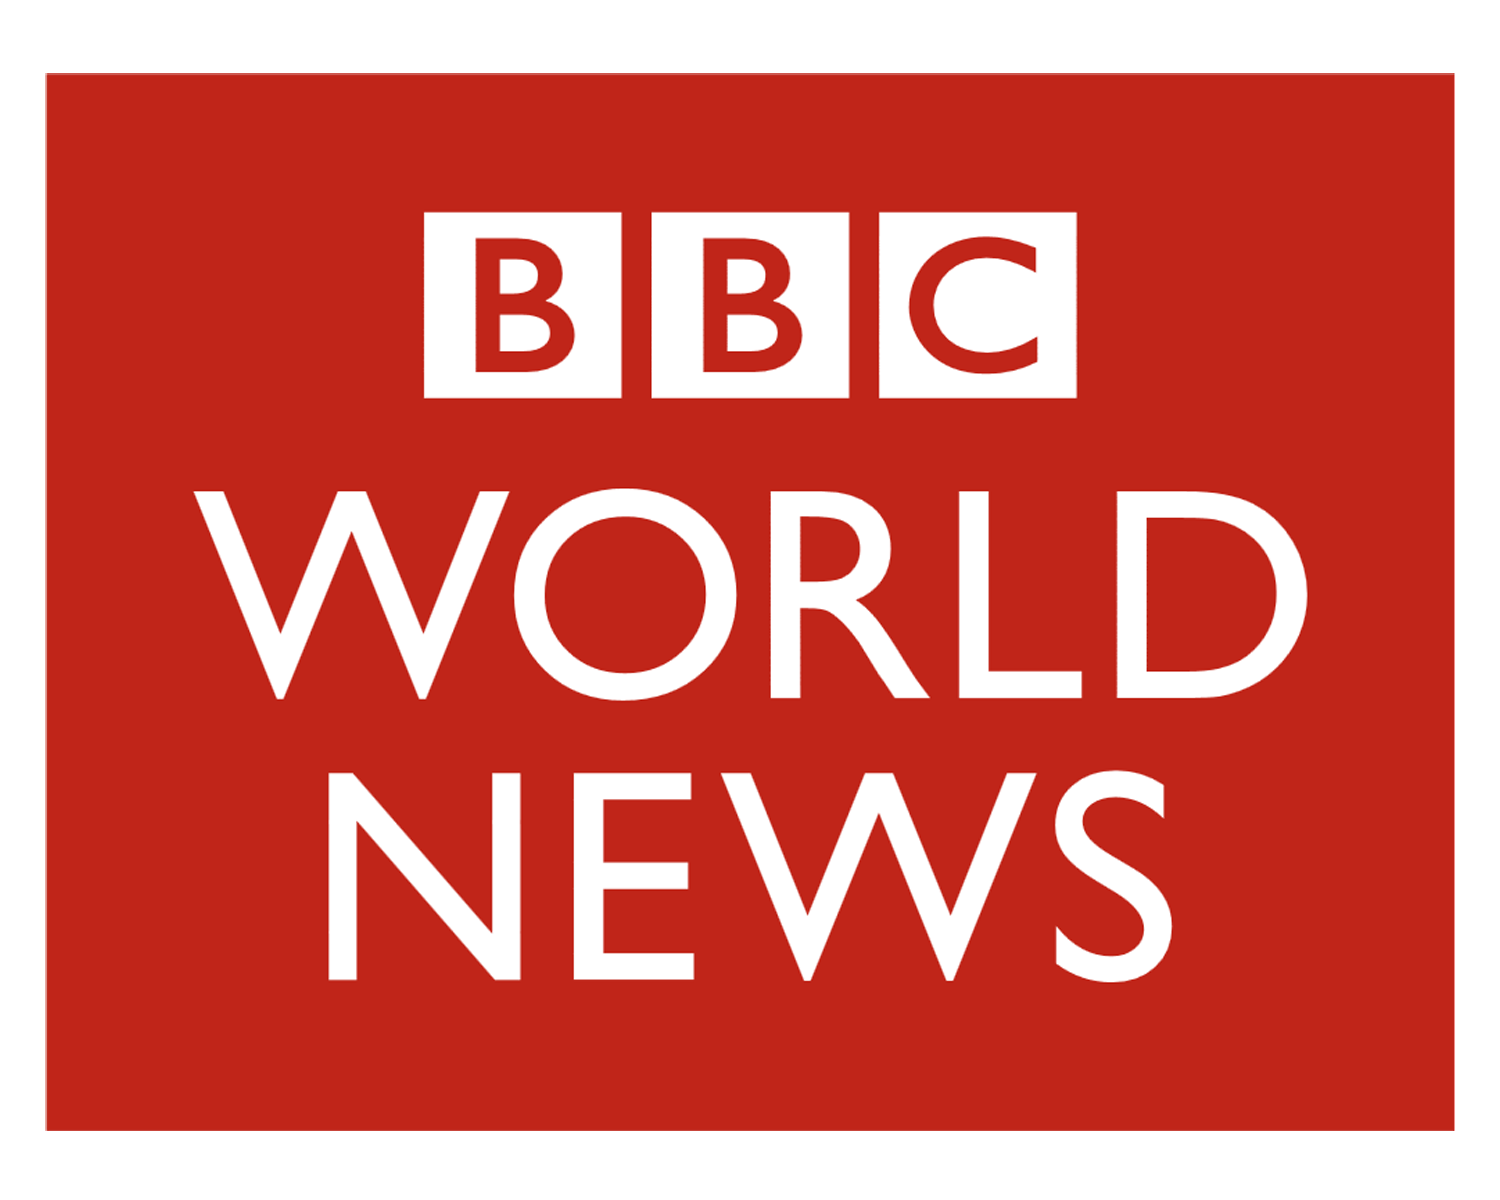 BBC World News Channel frequency - Channels Frequency